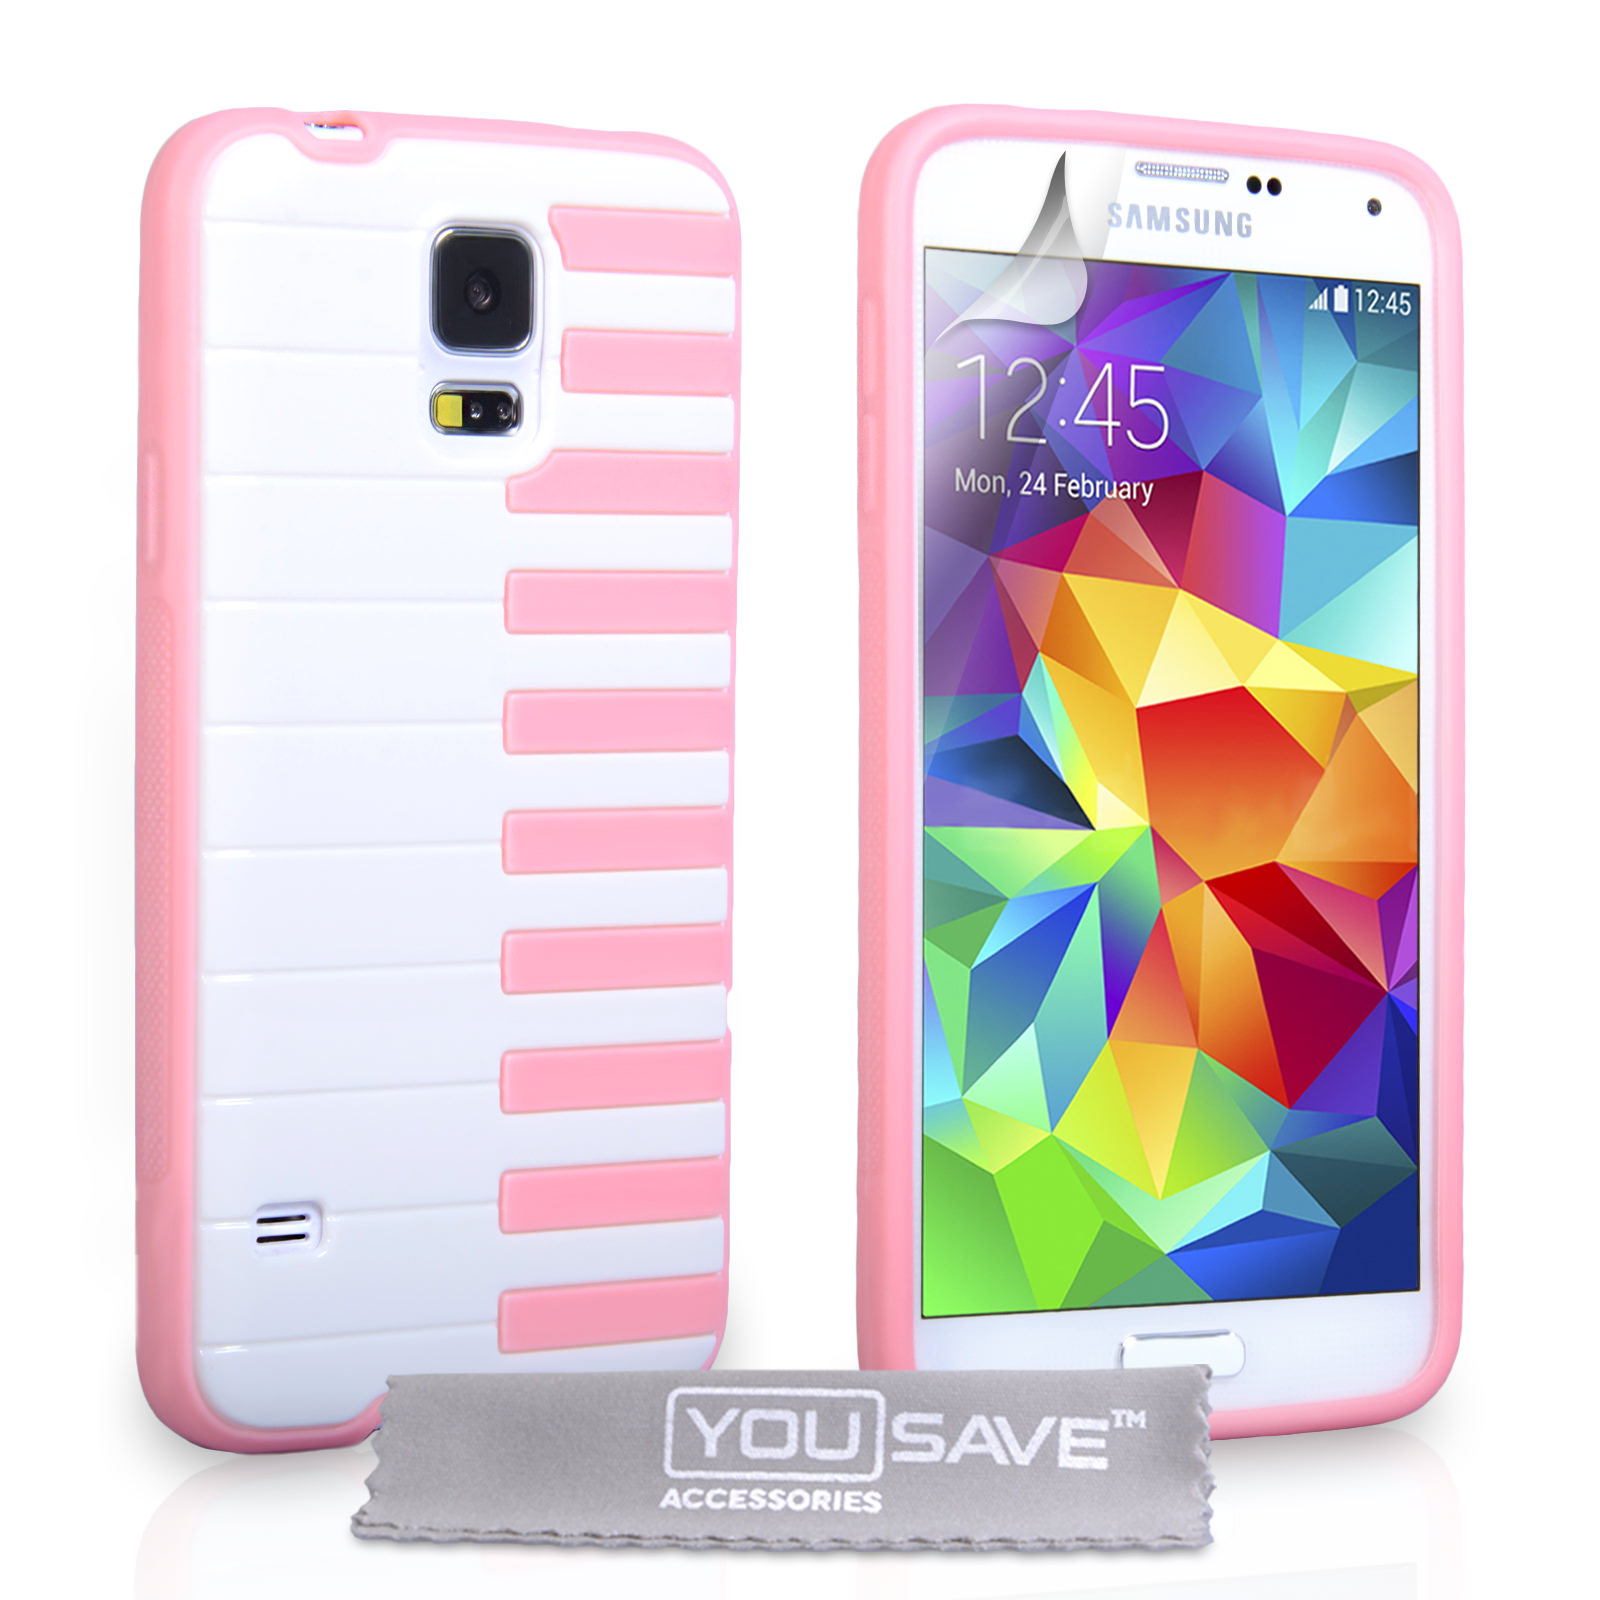 YouSave Accessories Samsung Galaxy S5 Piano Gel Case  - Pink